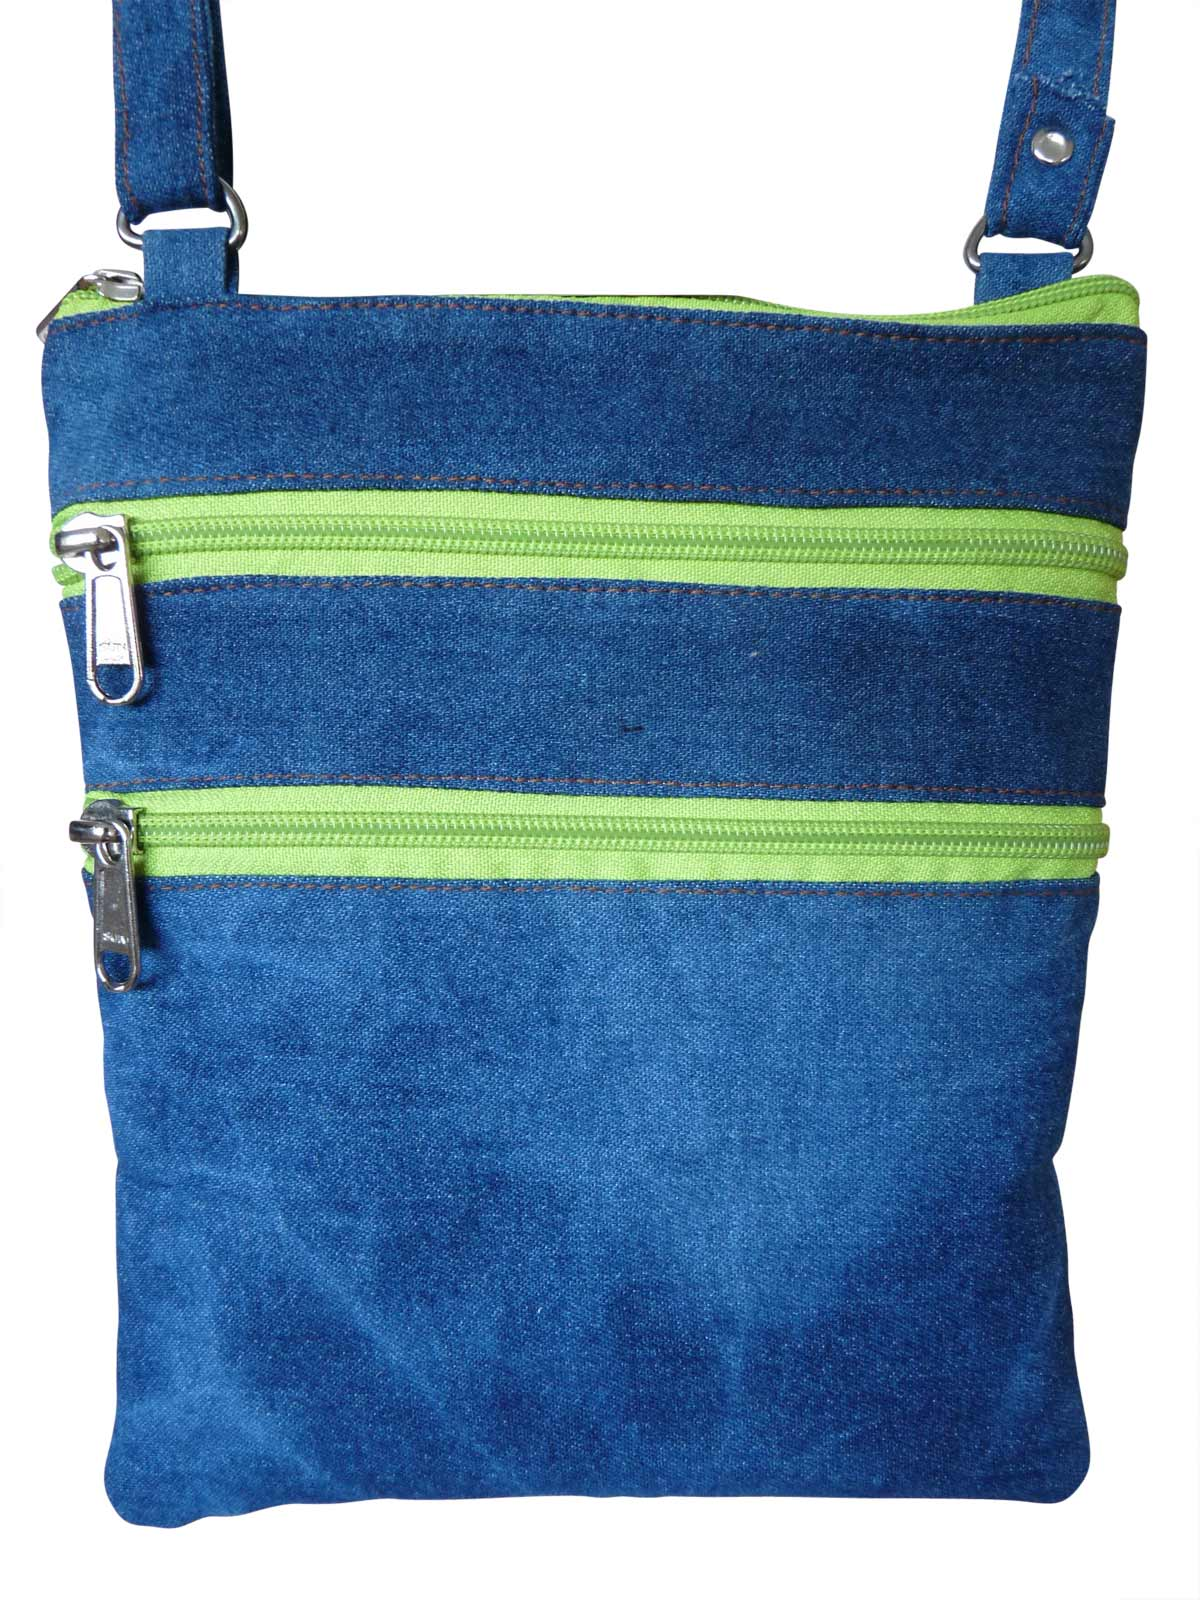 Denim Travel Pouch Light Green Zips RL178DLGZ